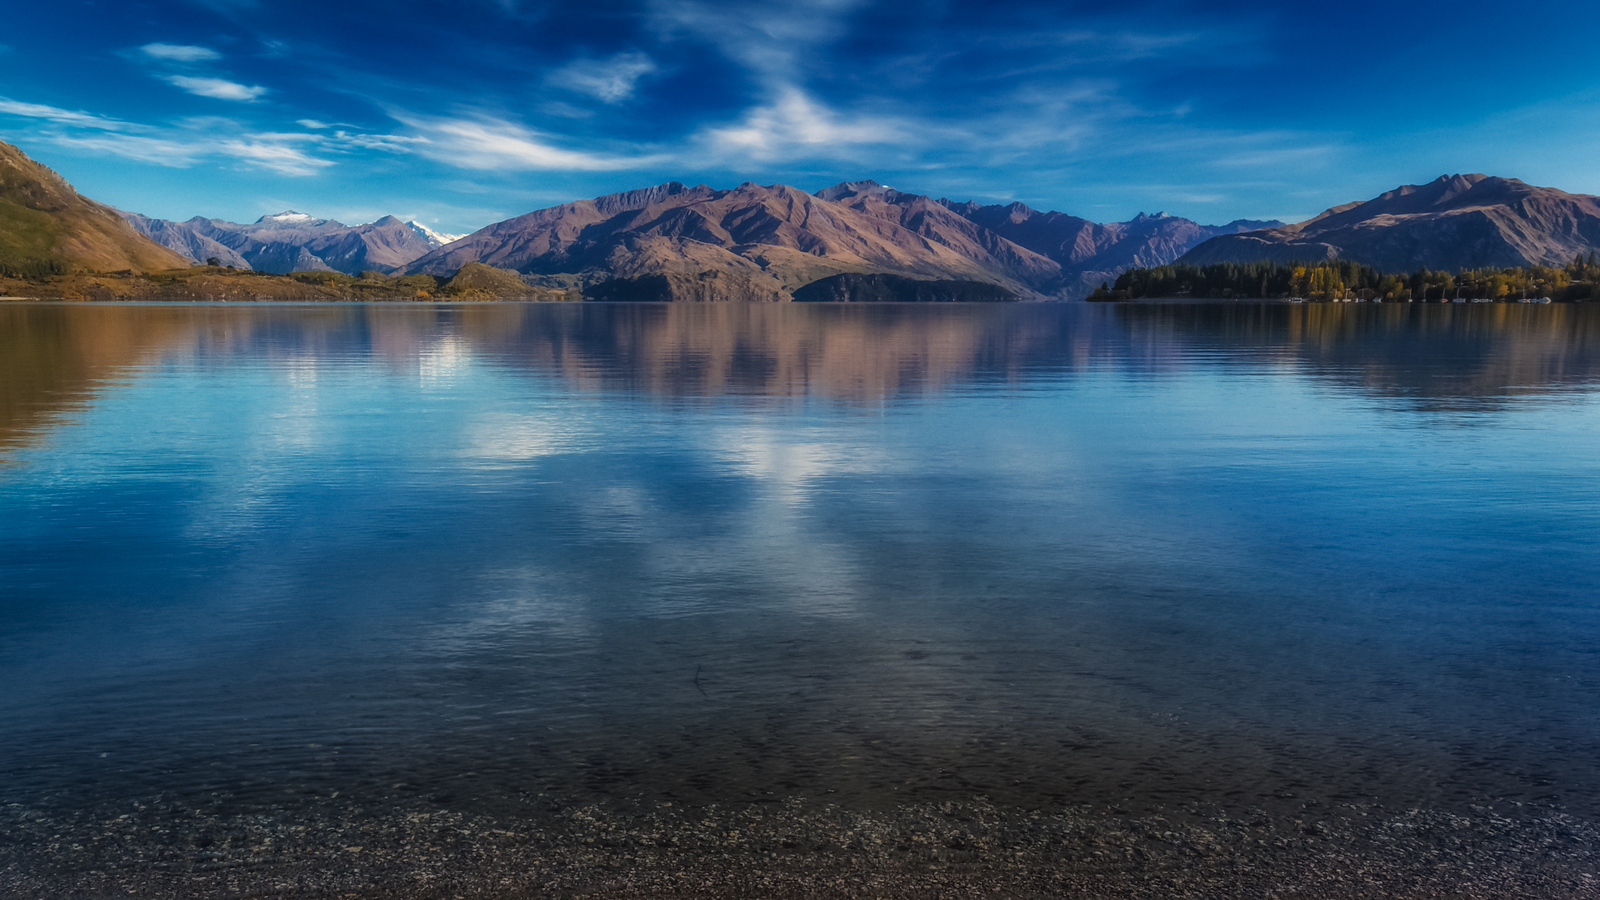 The Tranquil beauty of Lake Wanaka on the South Island of New Zealand.